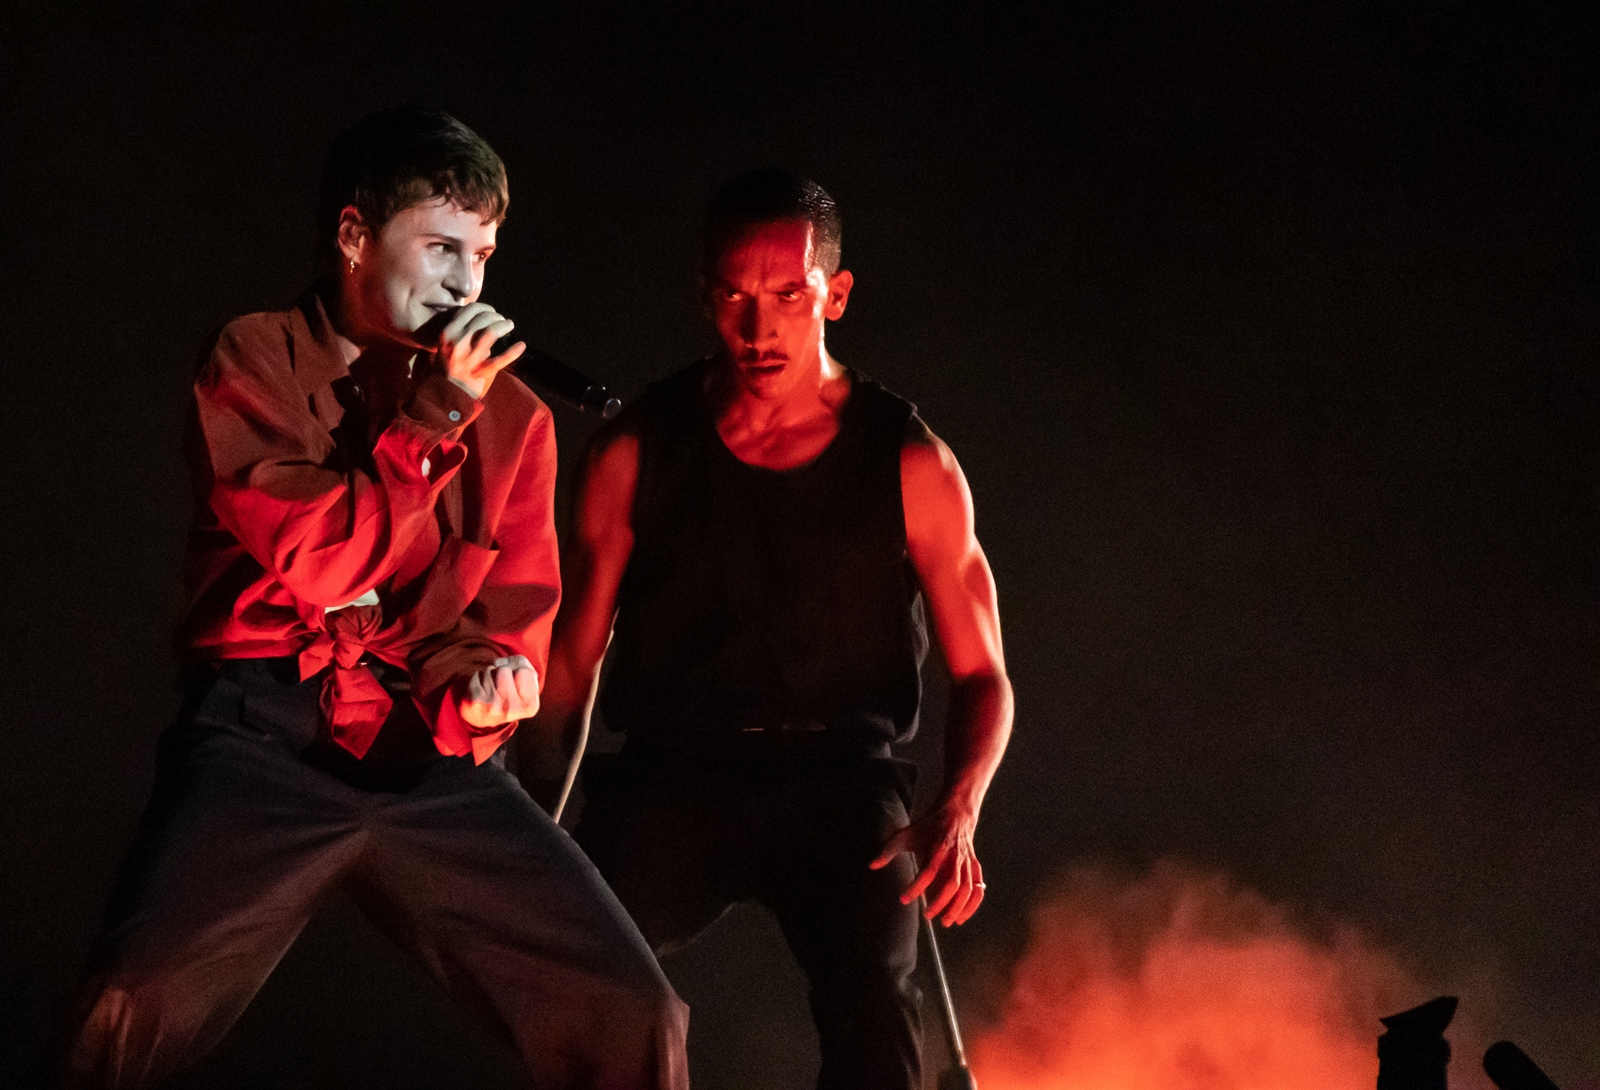 Christine and the Queens - Mainsquare Festival